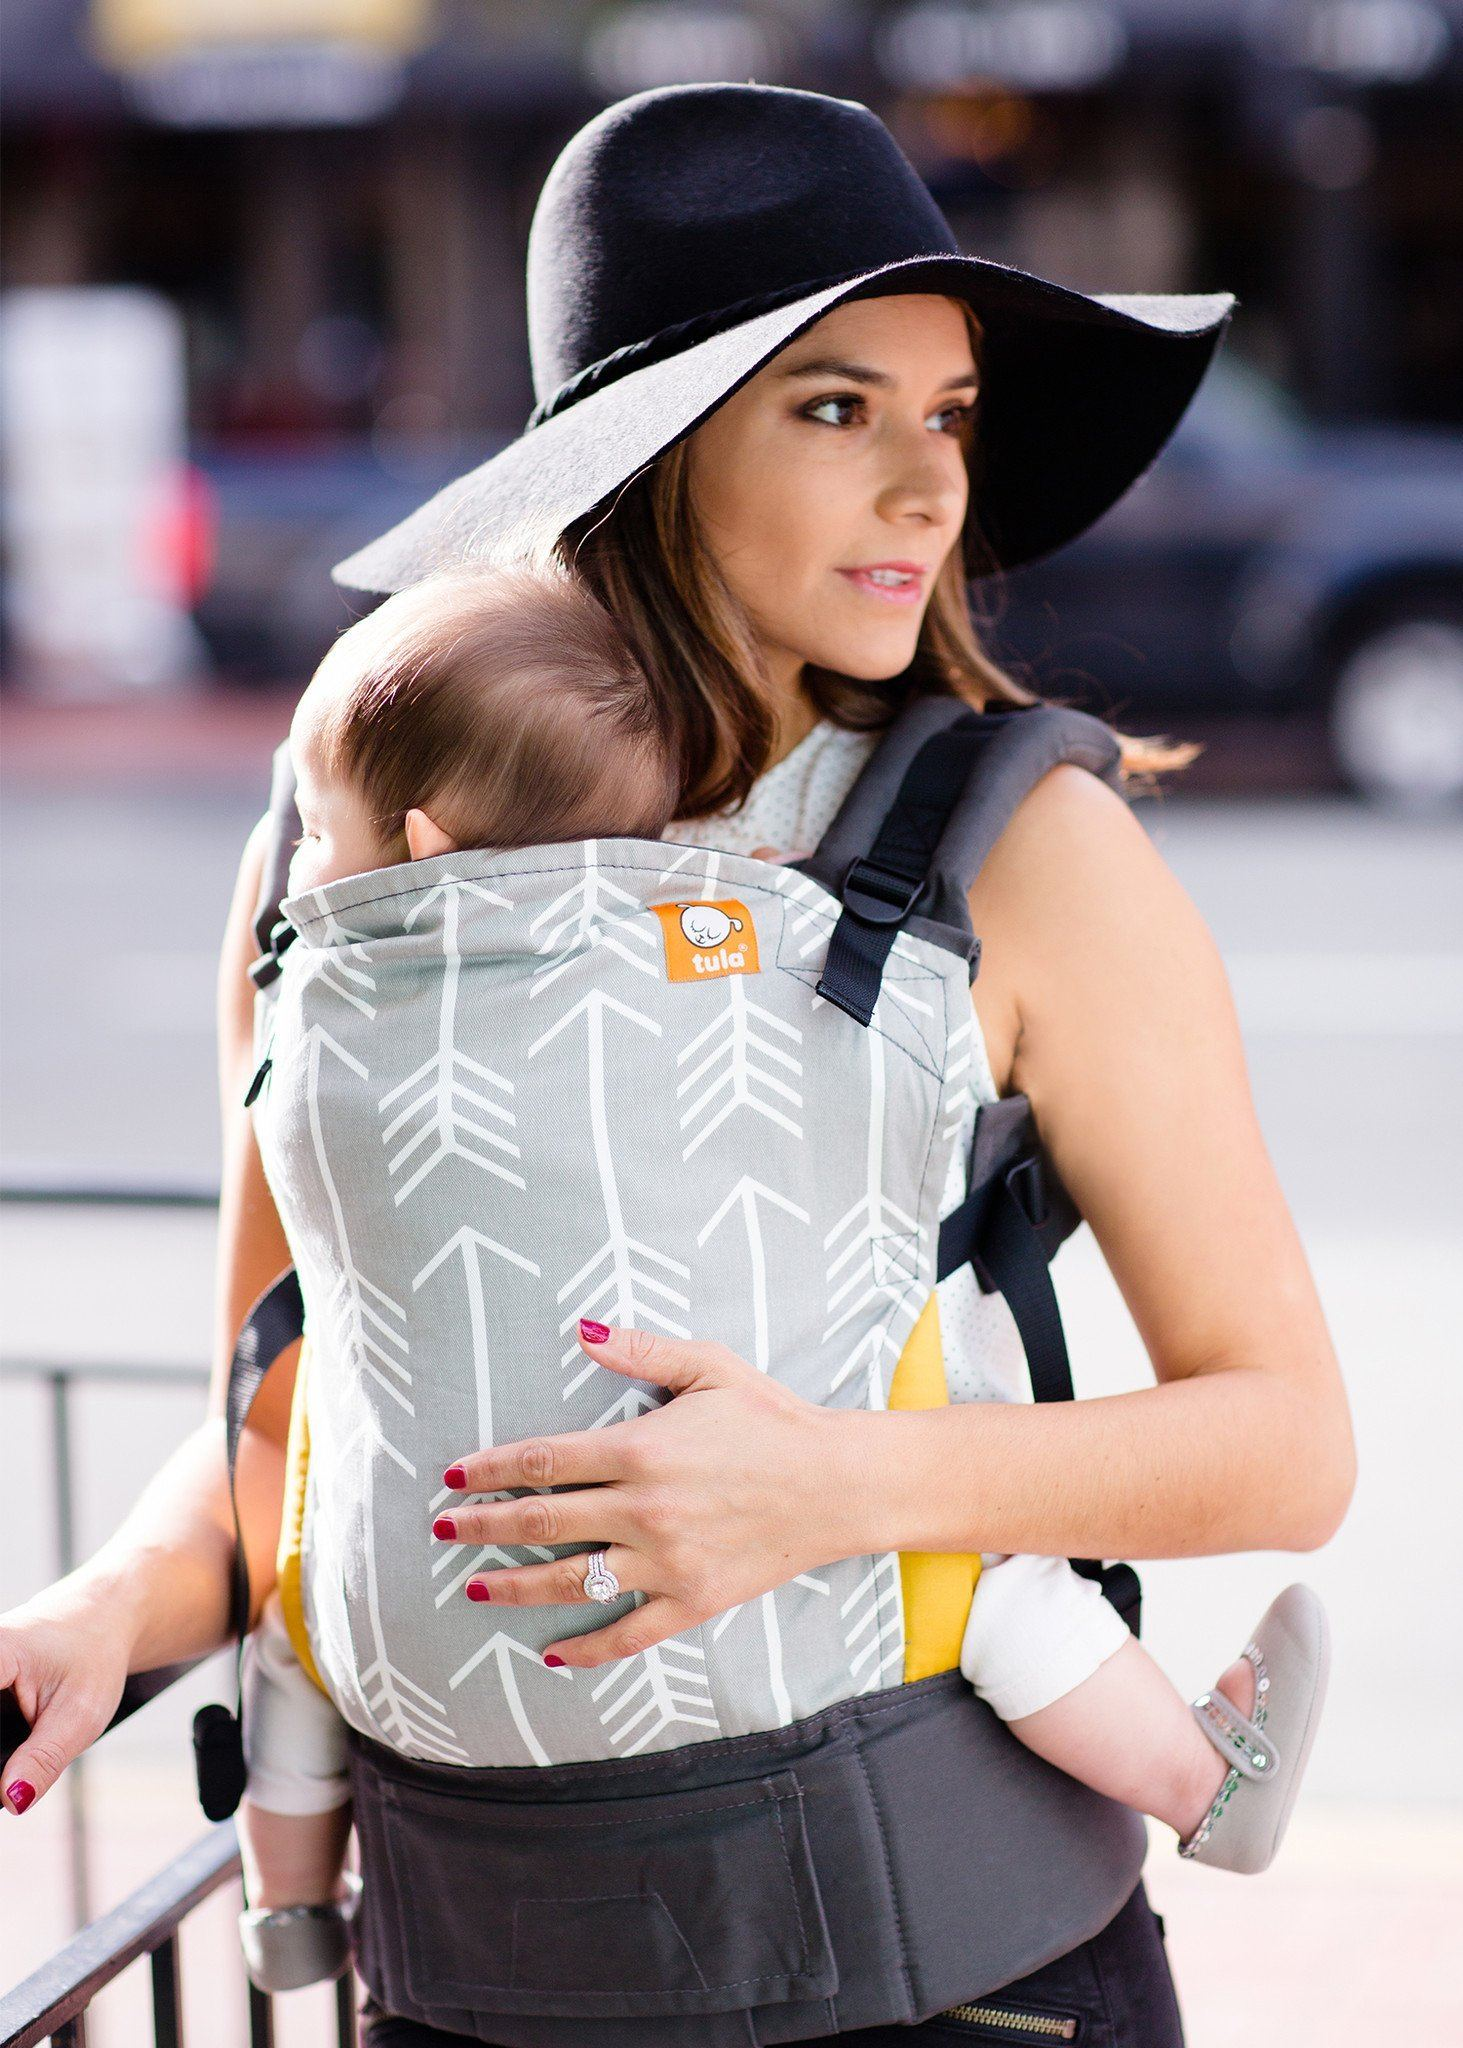 ... Archer - Tula Standard Carrier Ergonomic Baby Carrier   Baby Tula ... 44142981782